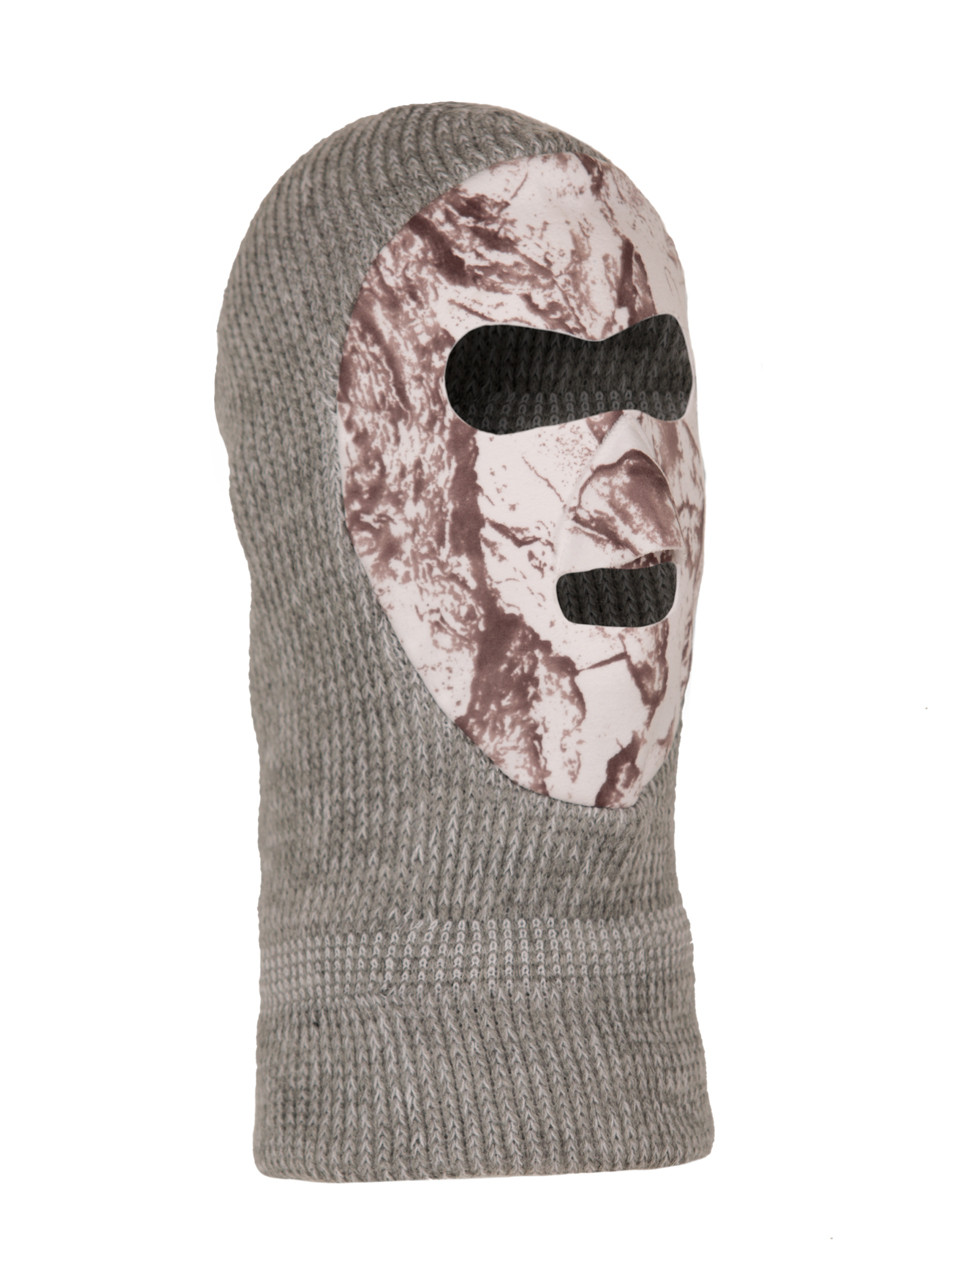 Snow Knit Face Mask - Winter Camouflage - Natural Gear